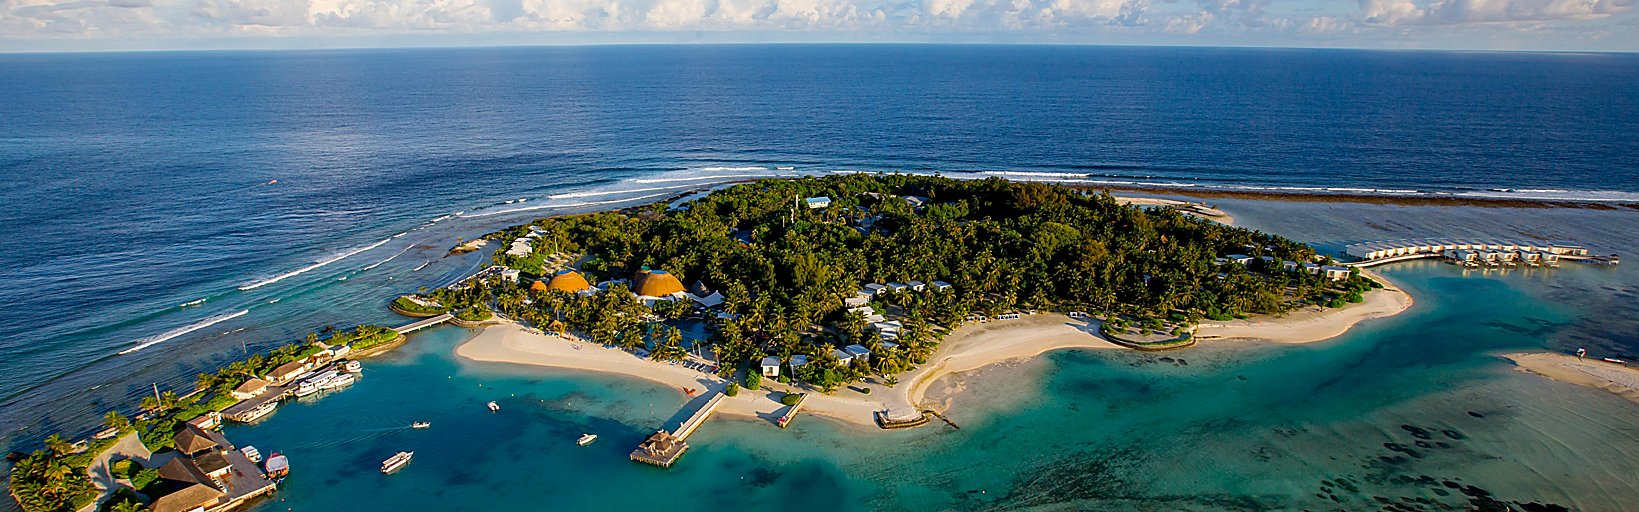 An aerial shot of the island of Kandooma.